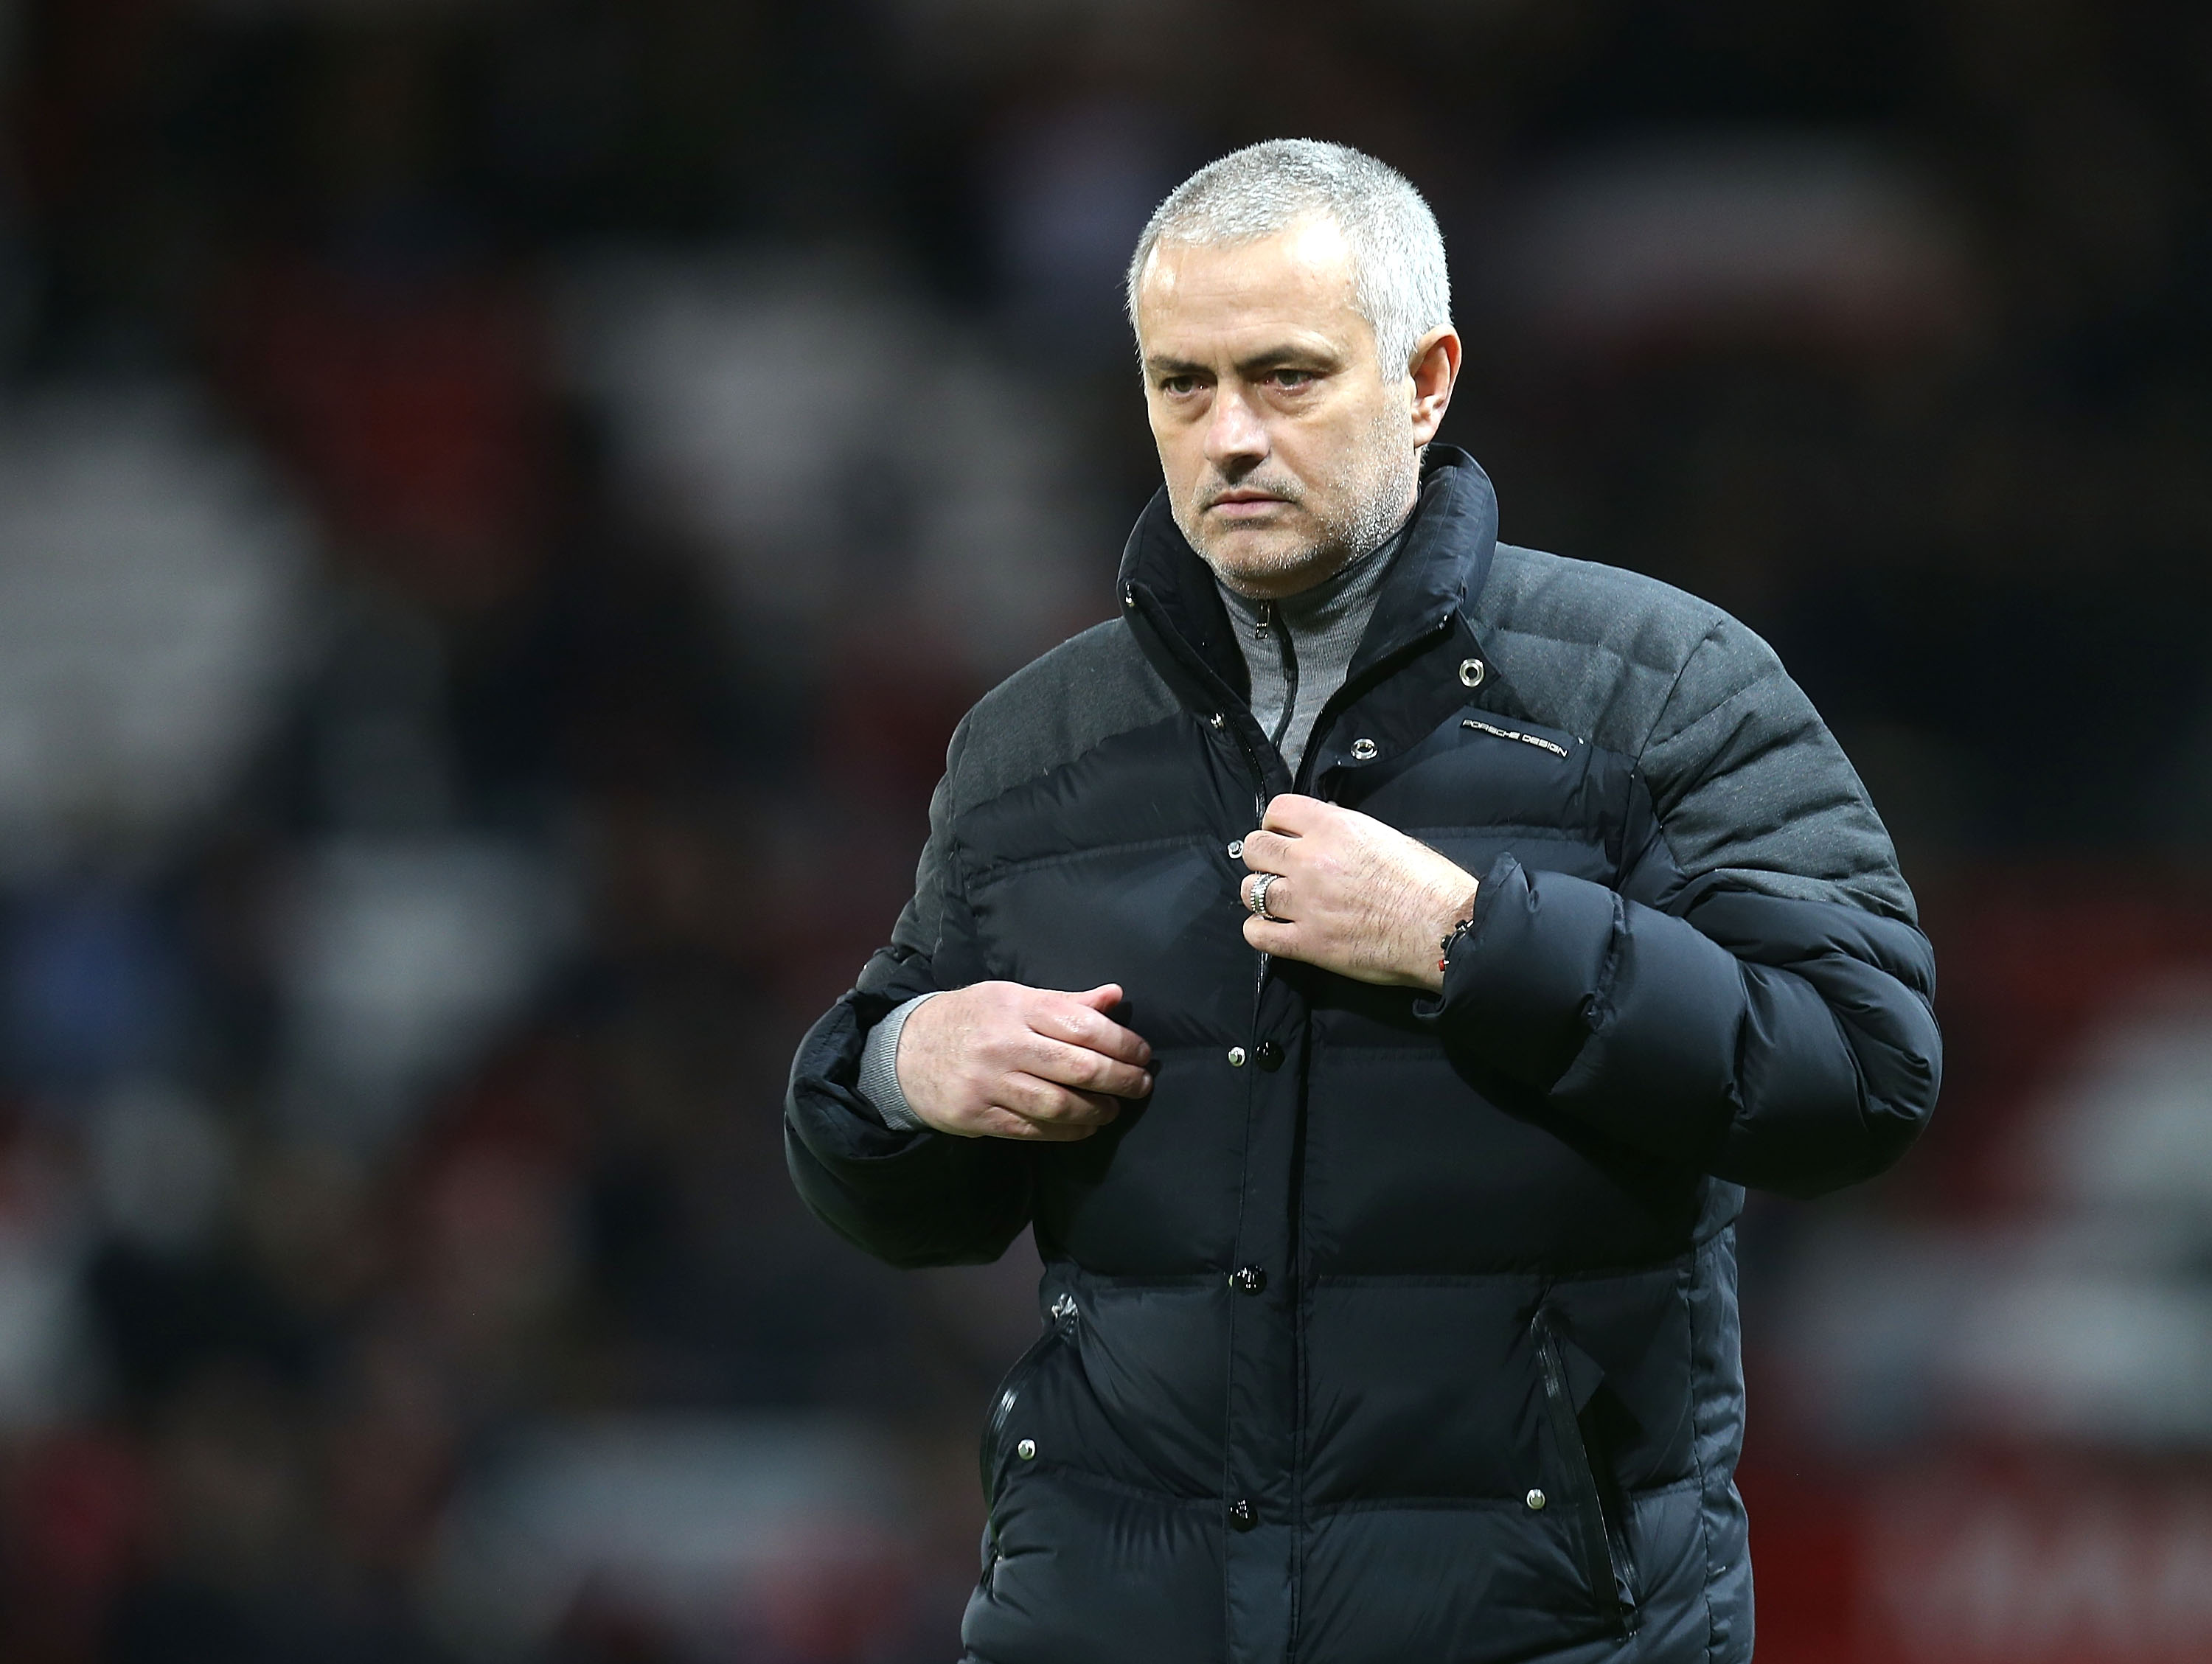 Furious Man United boss Jose Mourinho storms out of interview after Hull City draw